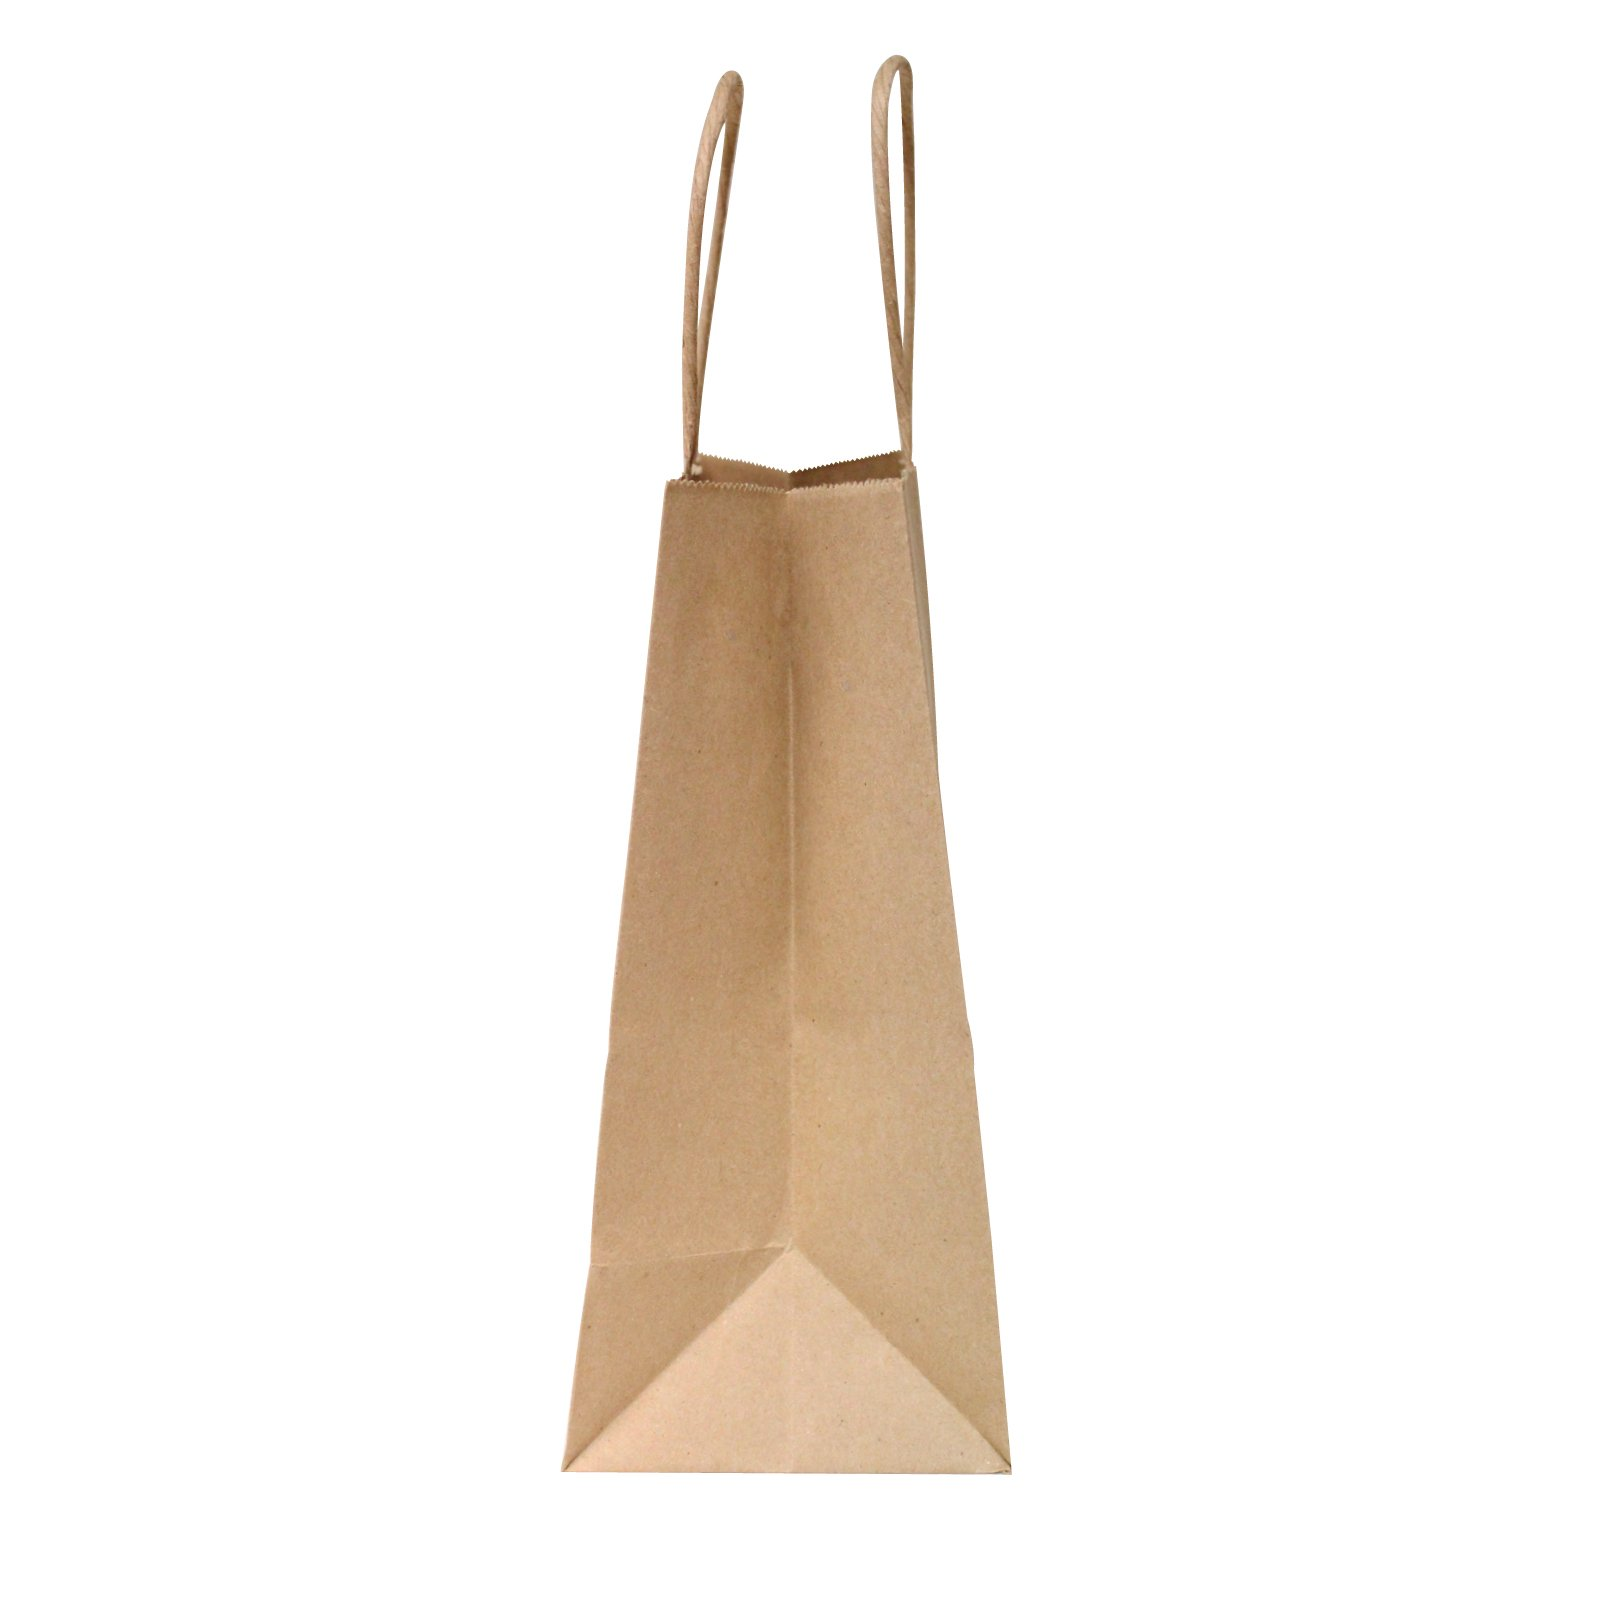 Flexicore Packaging 8''x4.75''x10''-100 Pcs-Brown Kraft Paper Shopping, Mechandise, Party, Gift Bags by Duro (Image #2)